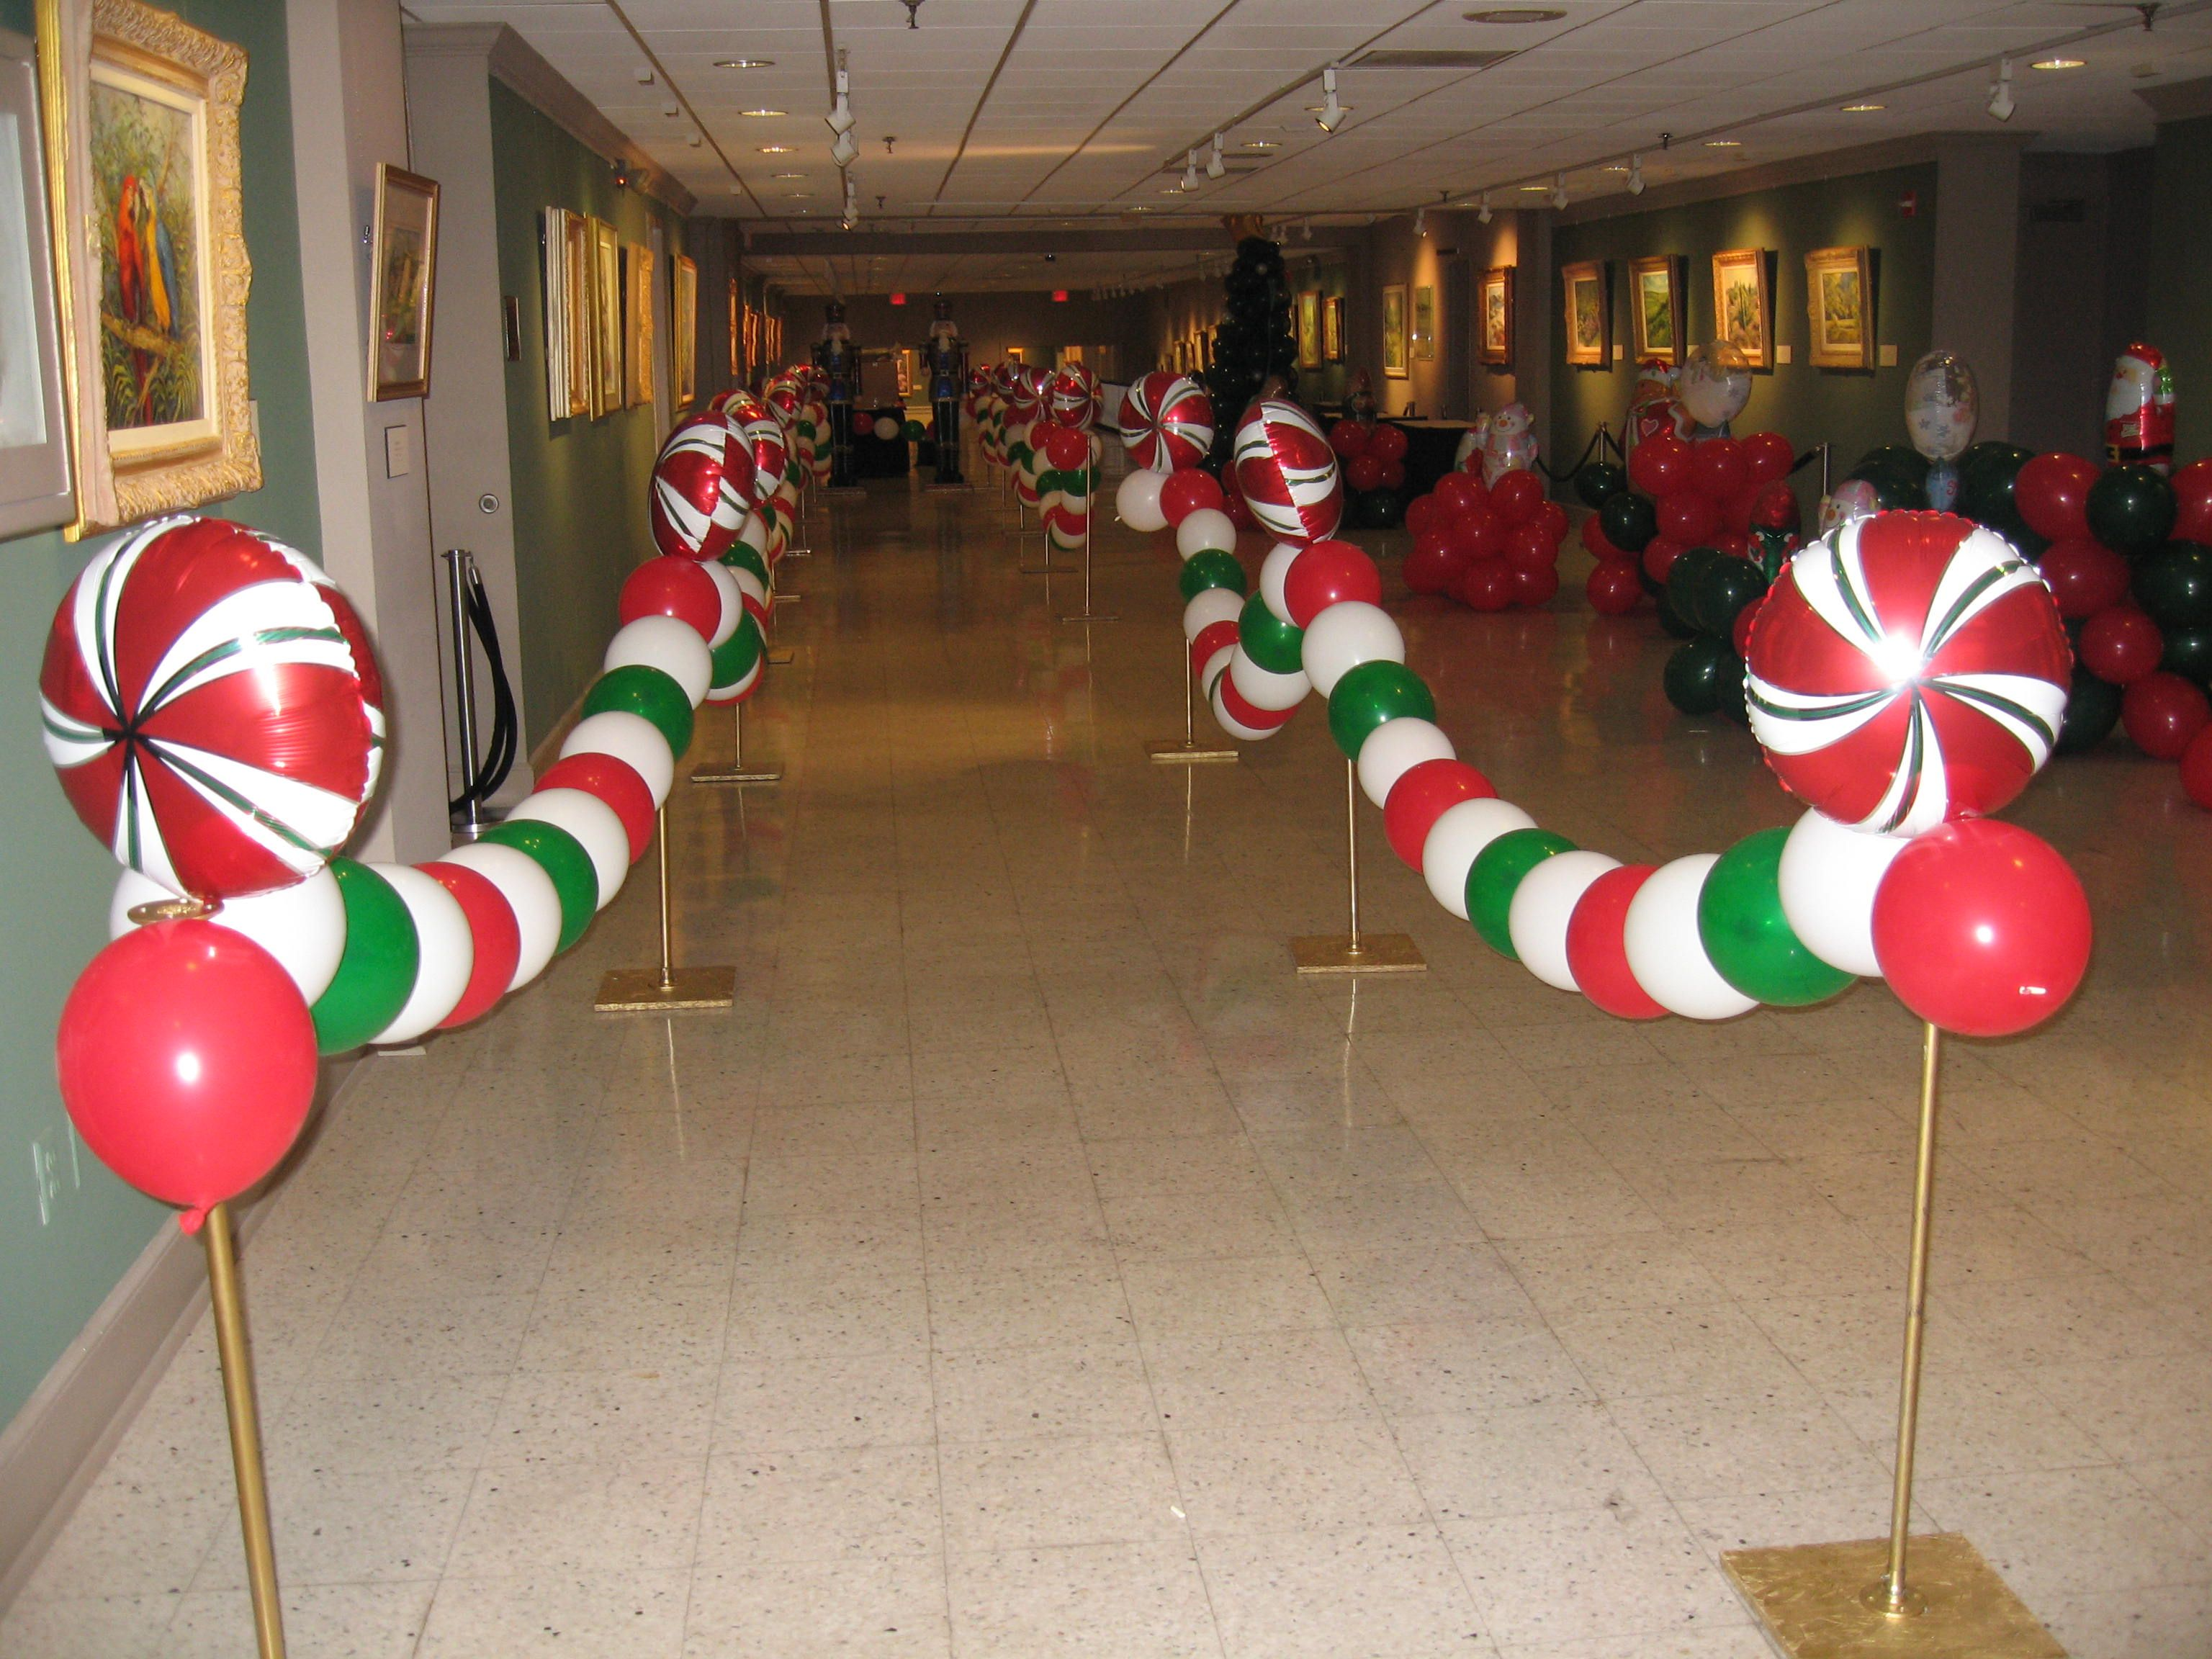 Baltimore S Best Events Seasons Winter Wonderland Holiday Office Christmas Decorations Christmas Balloons Office Christmas